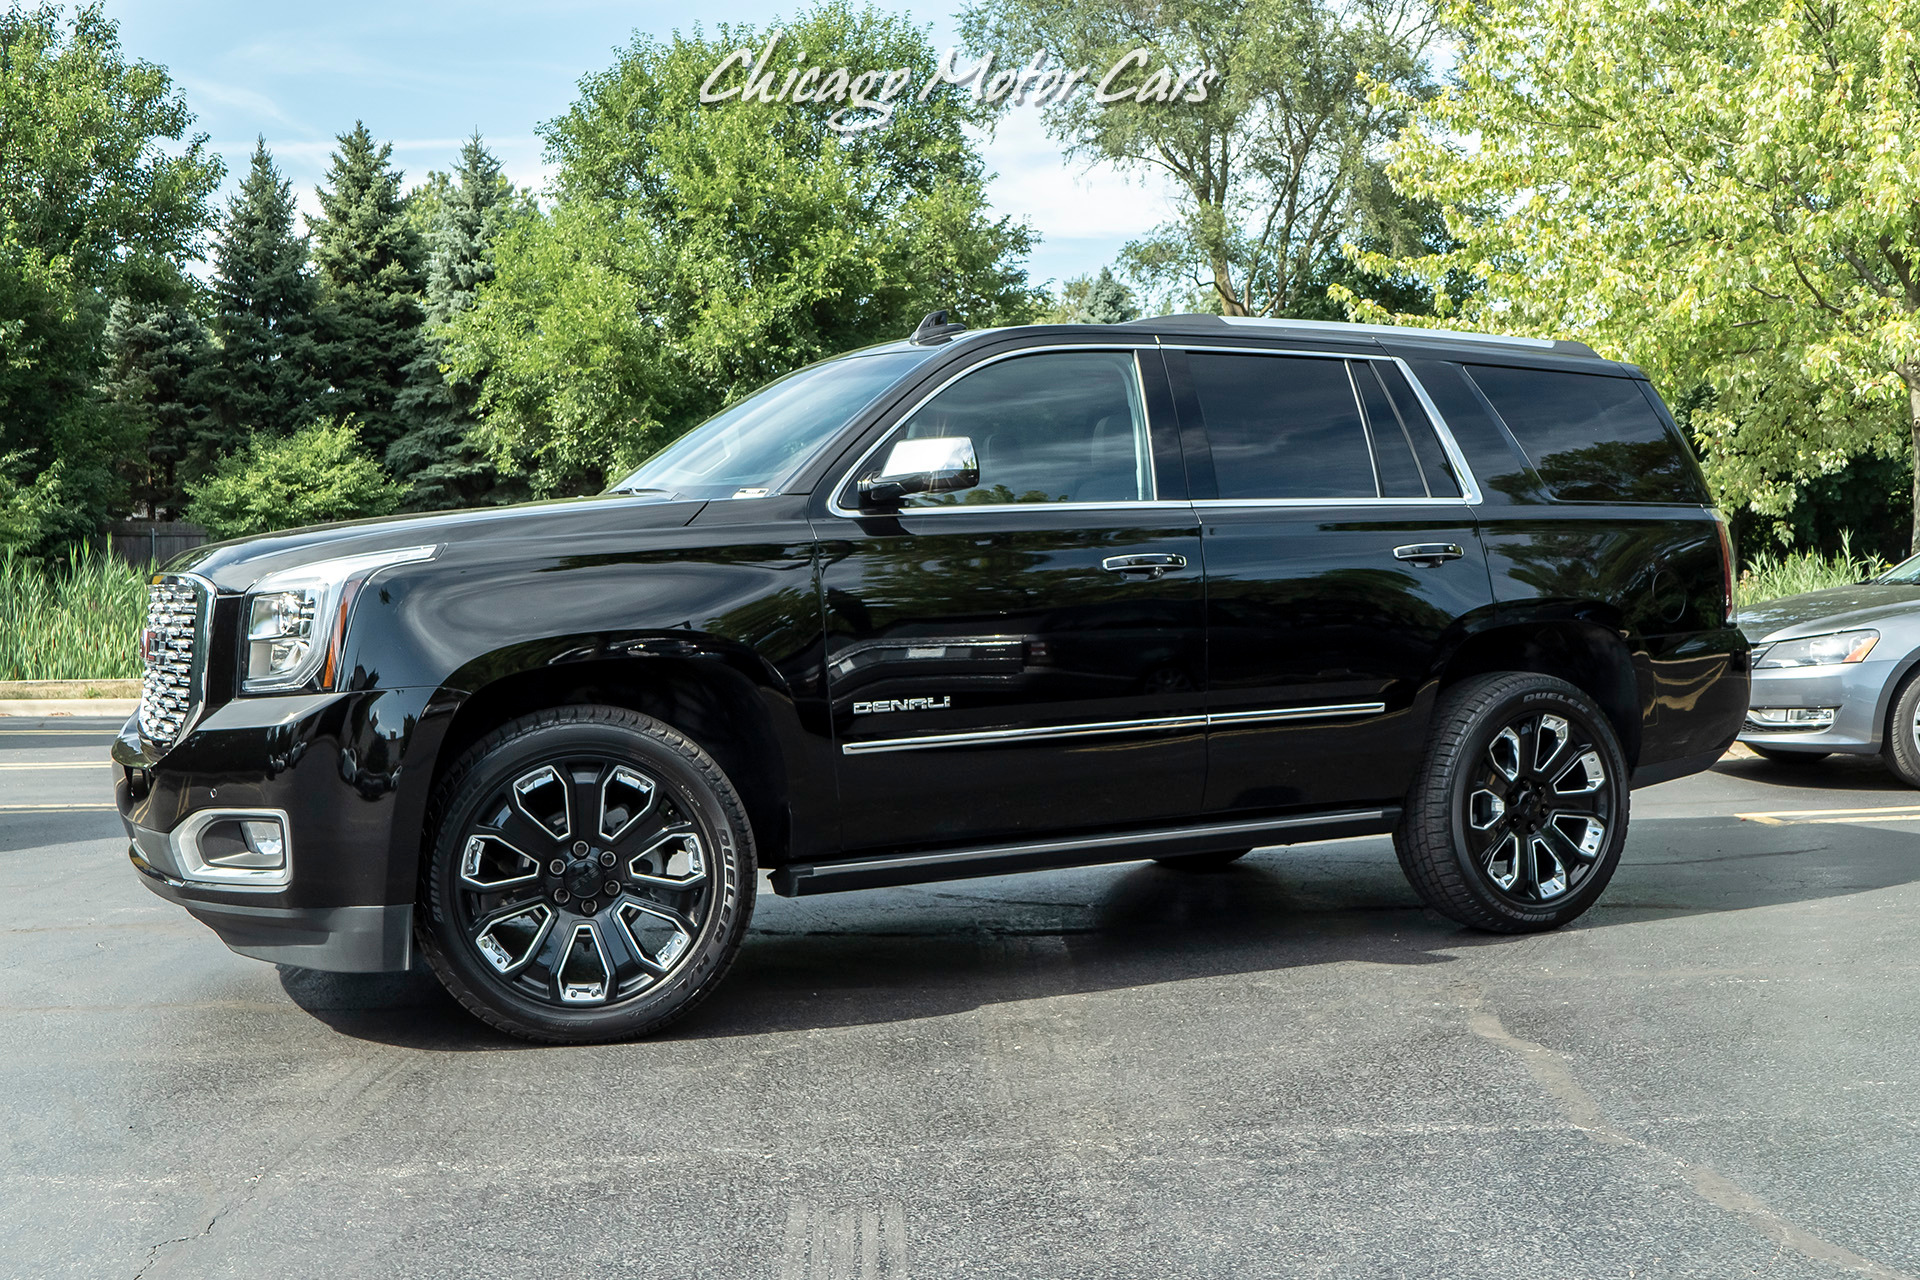 Used Yukon Denali >> Used 2019 Gmc Yukon Denali Ultimate Black Edition For Sale